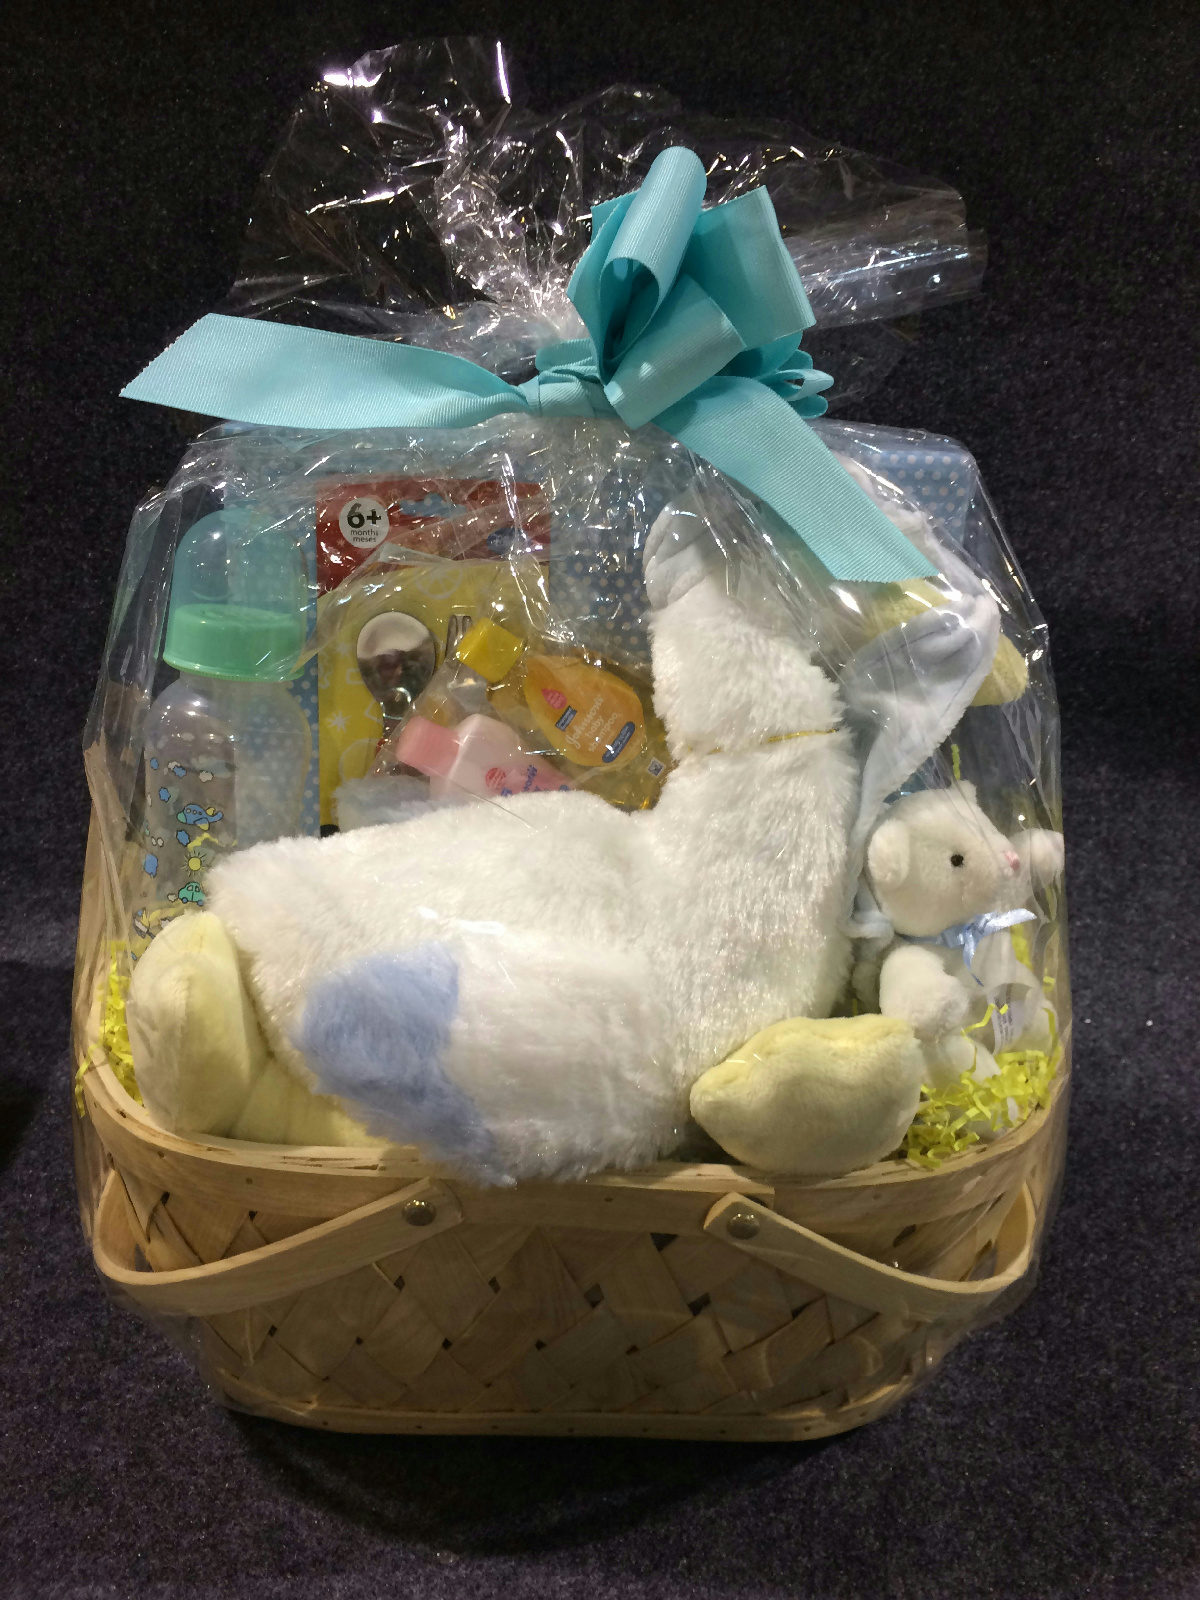 Baby Gift Delivered : California delicious gift basket special stork delivery